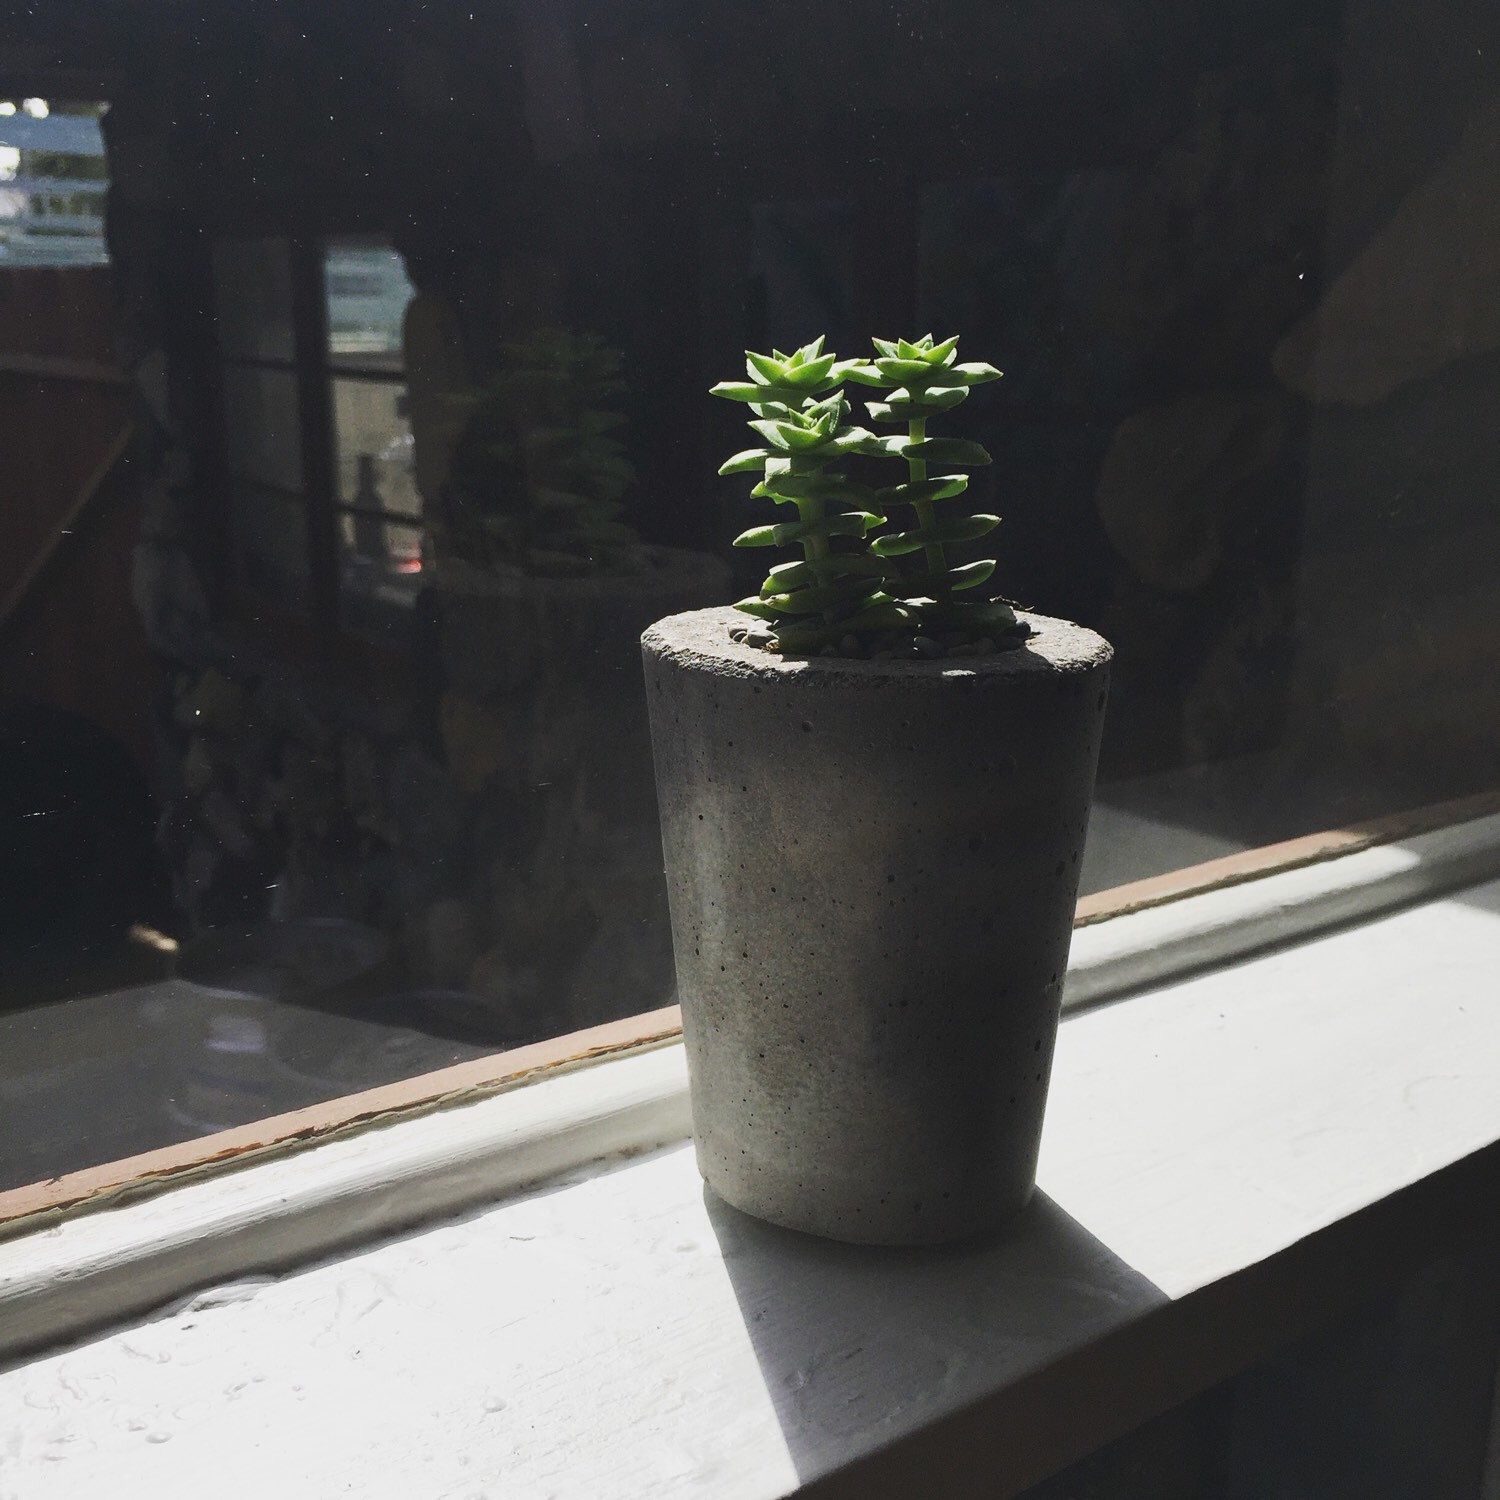 Our planters are finding homes! Photo taken by a customer, get yours today!